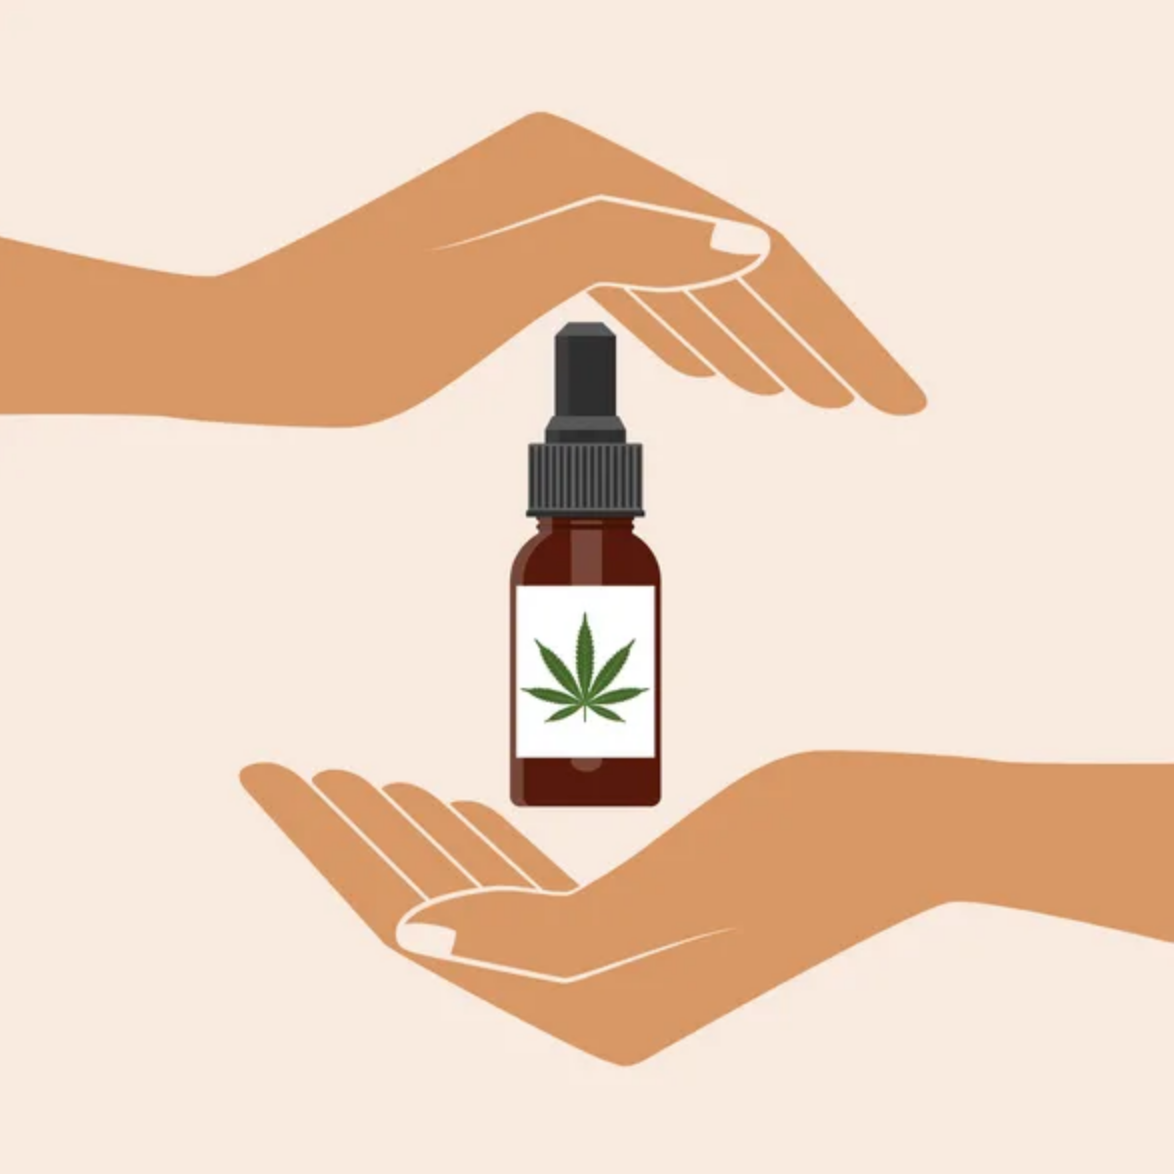 Rachel Ray11 CBD-Infused Beauty Buys for Your Self-Care Routine - From facial creams and skin balms to mascaras and lip glosses, infusing makeup and skincare products with this hemp-derived, non-psychoactive ingredient is the latest trend. Read on >